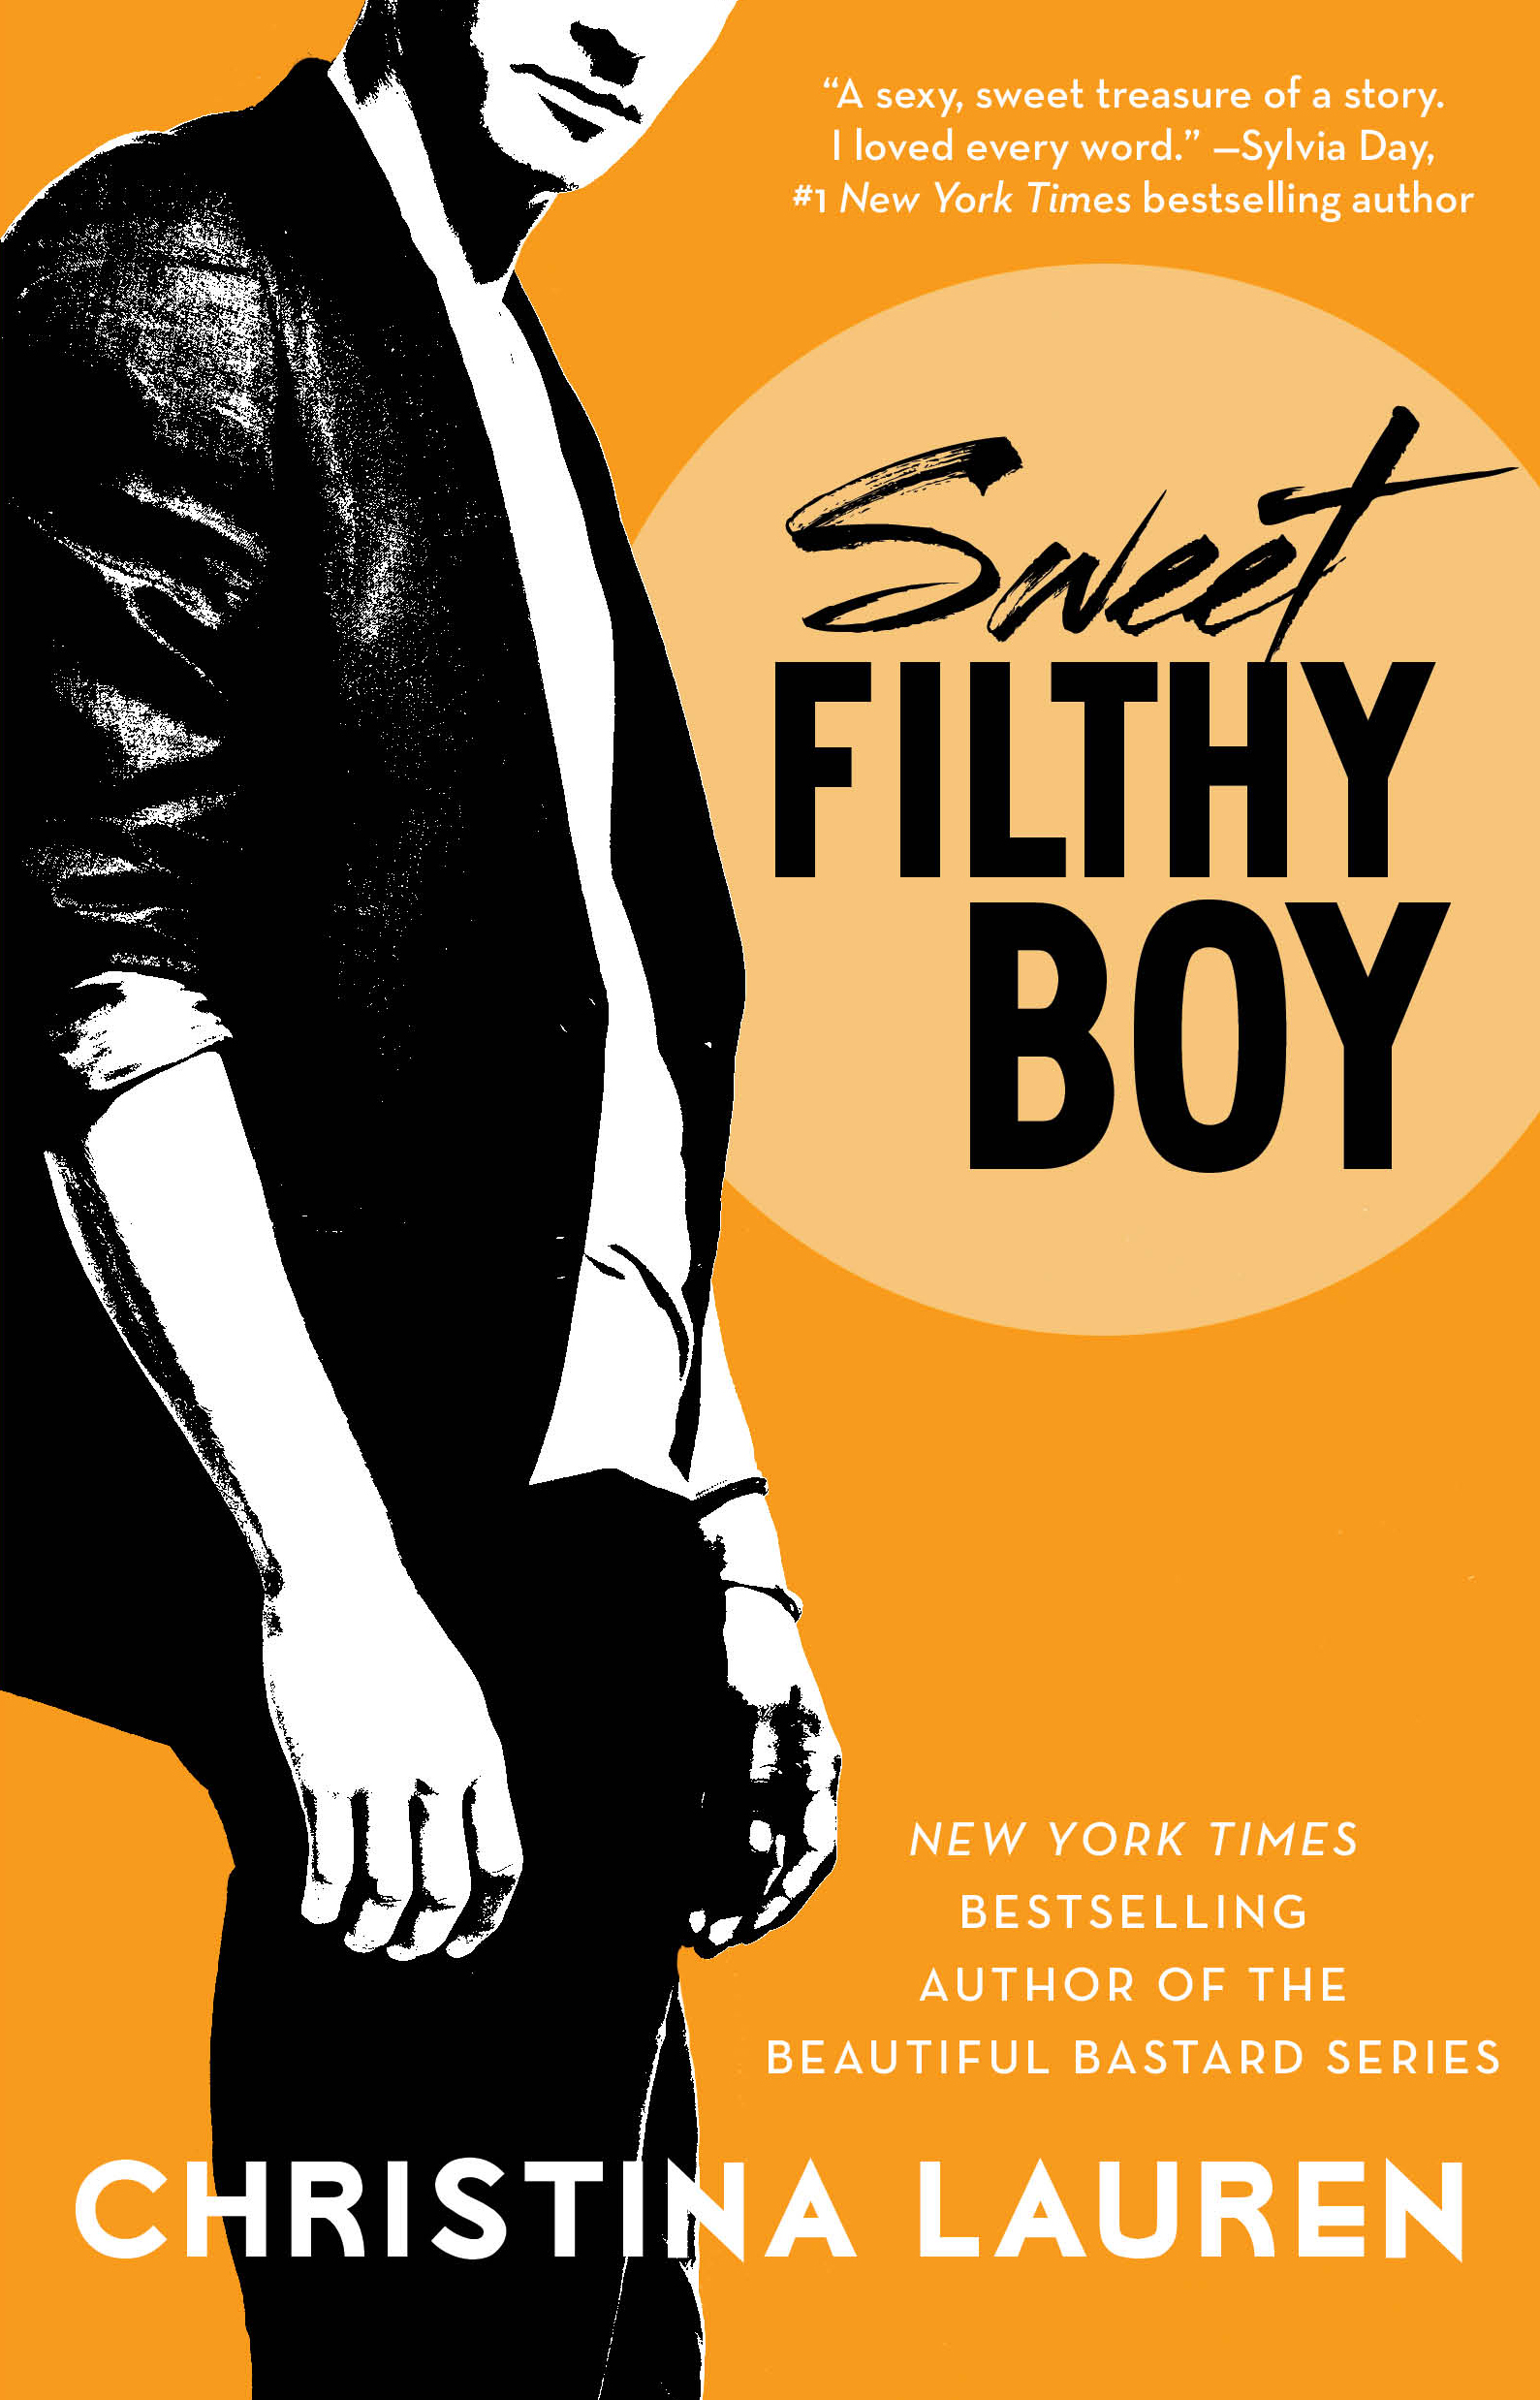 Sweet filthy boy special signed edition 9781501100642 hr